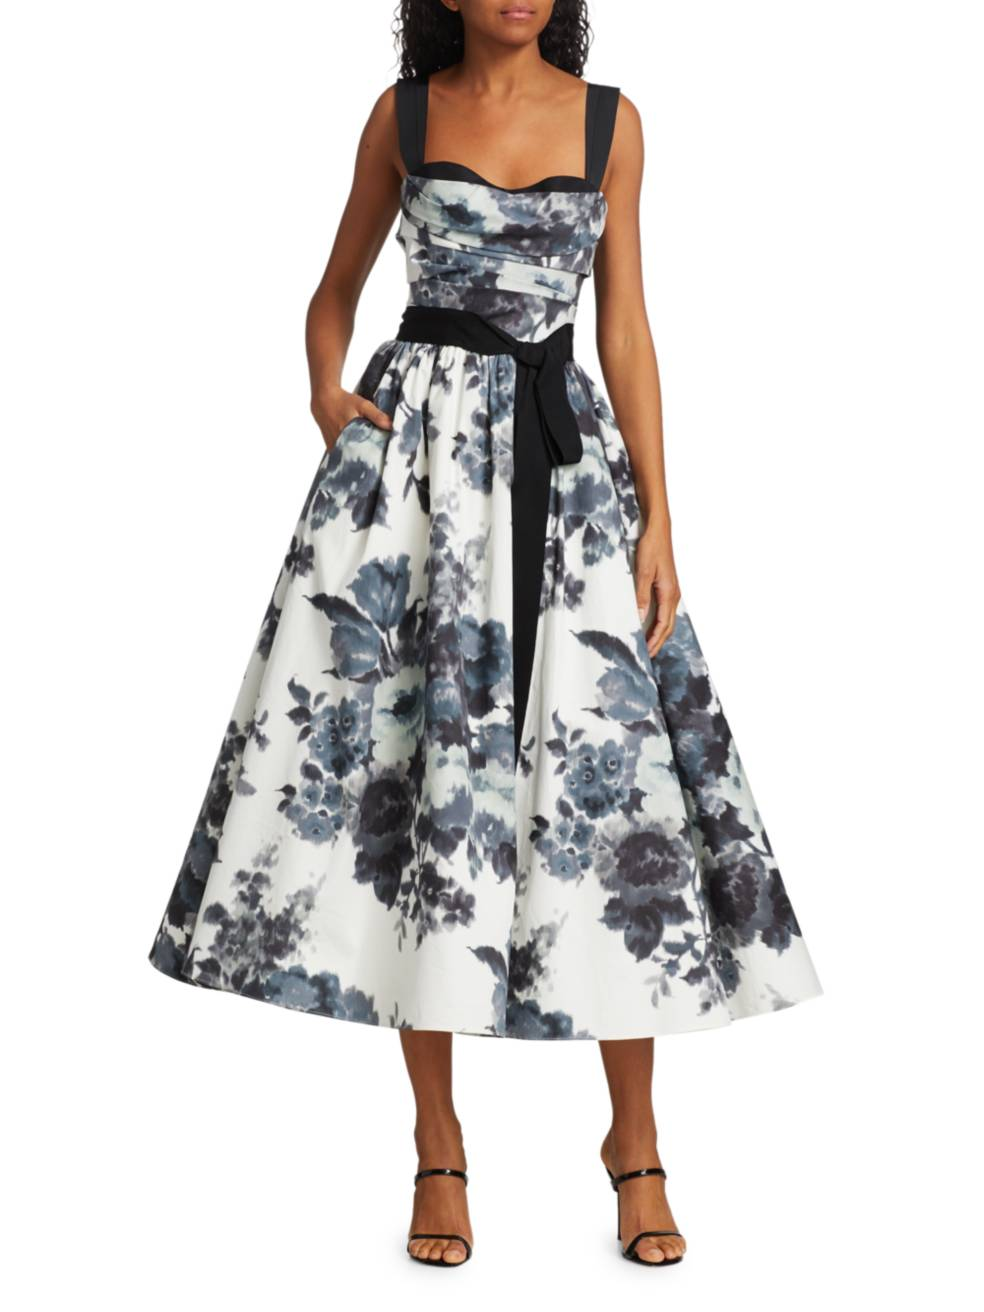 CAROLINA HERRERA Floral Bow A-Line Cocktail Dress